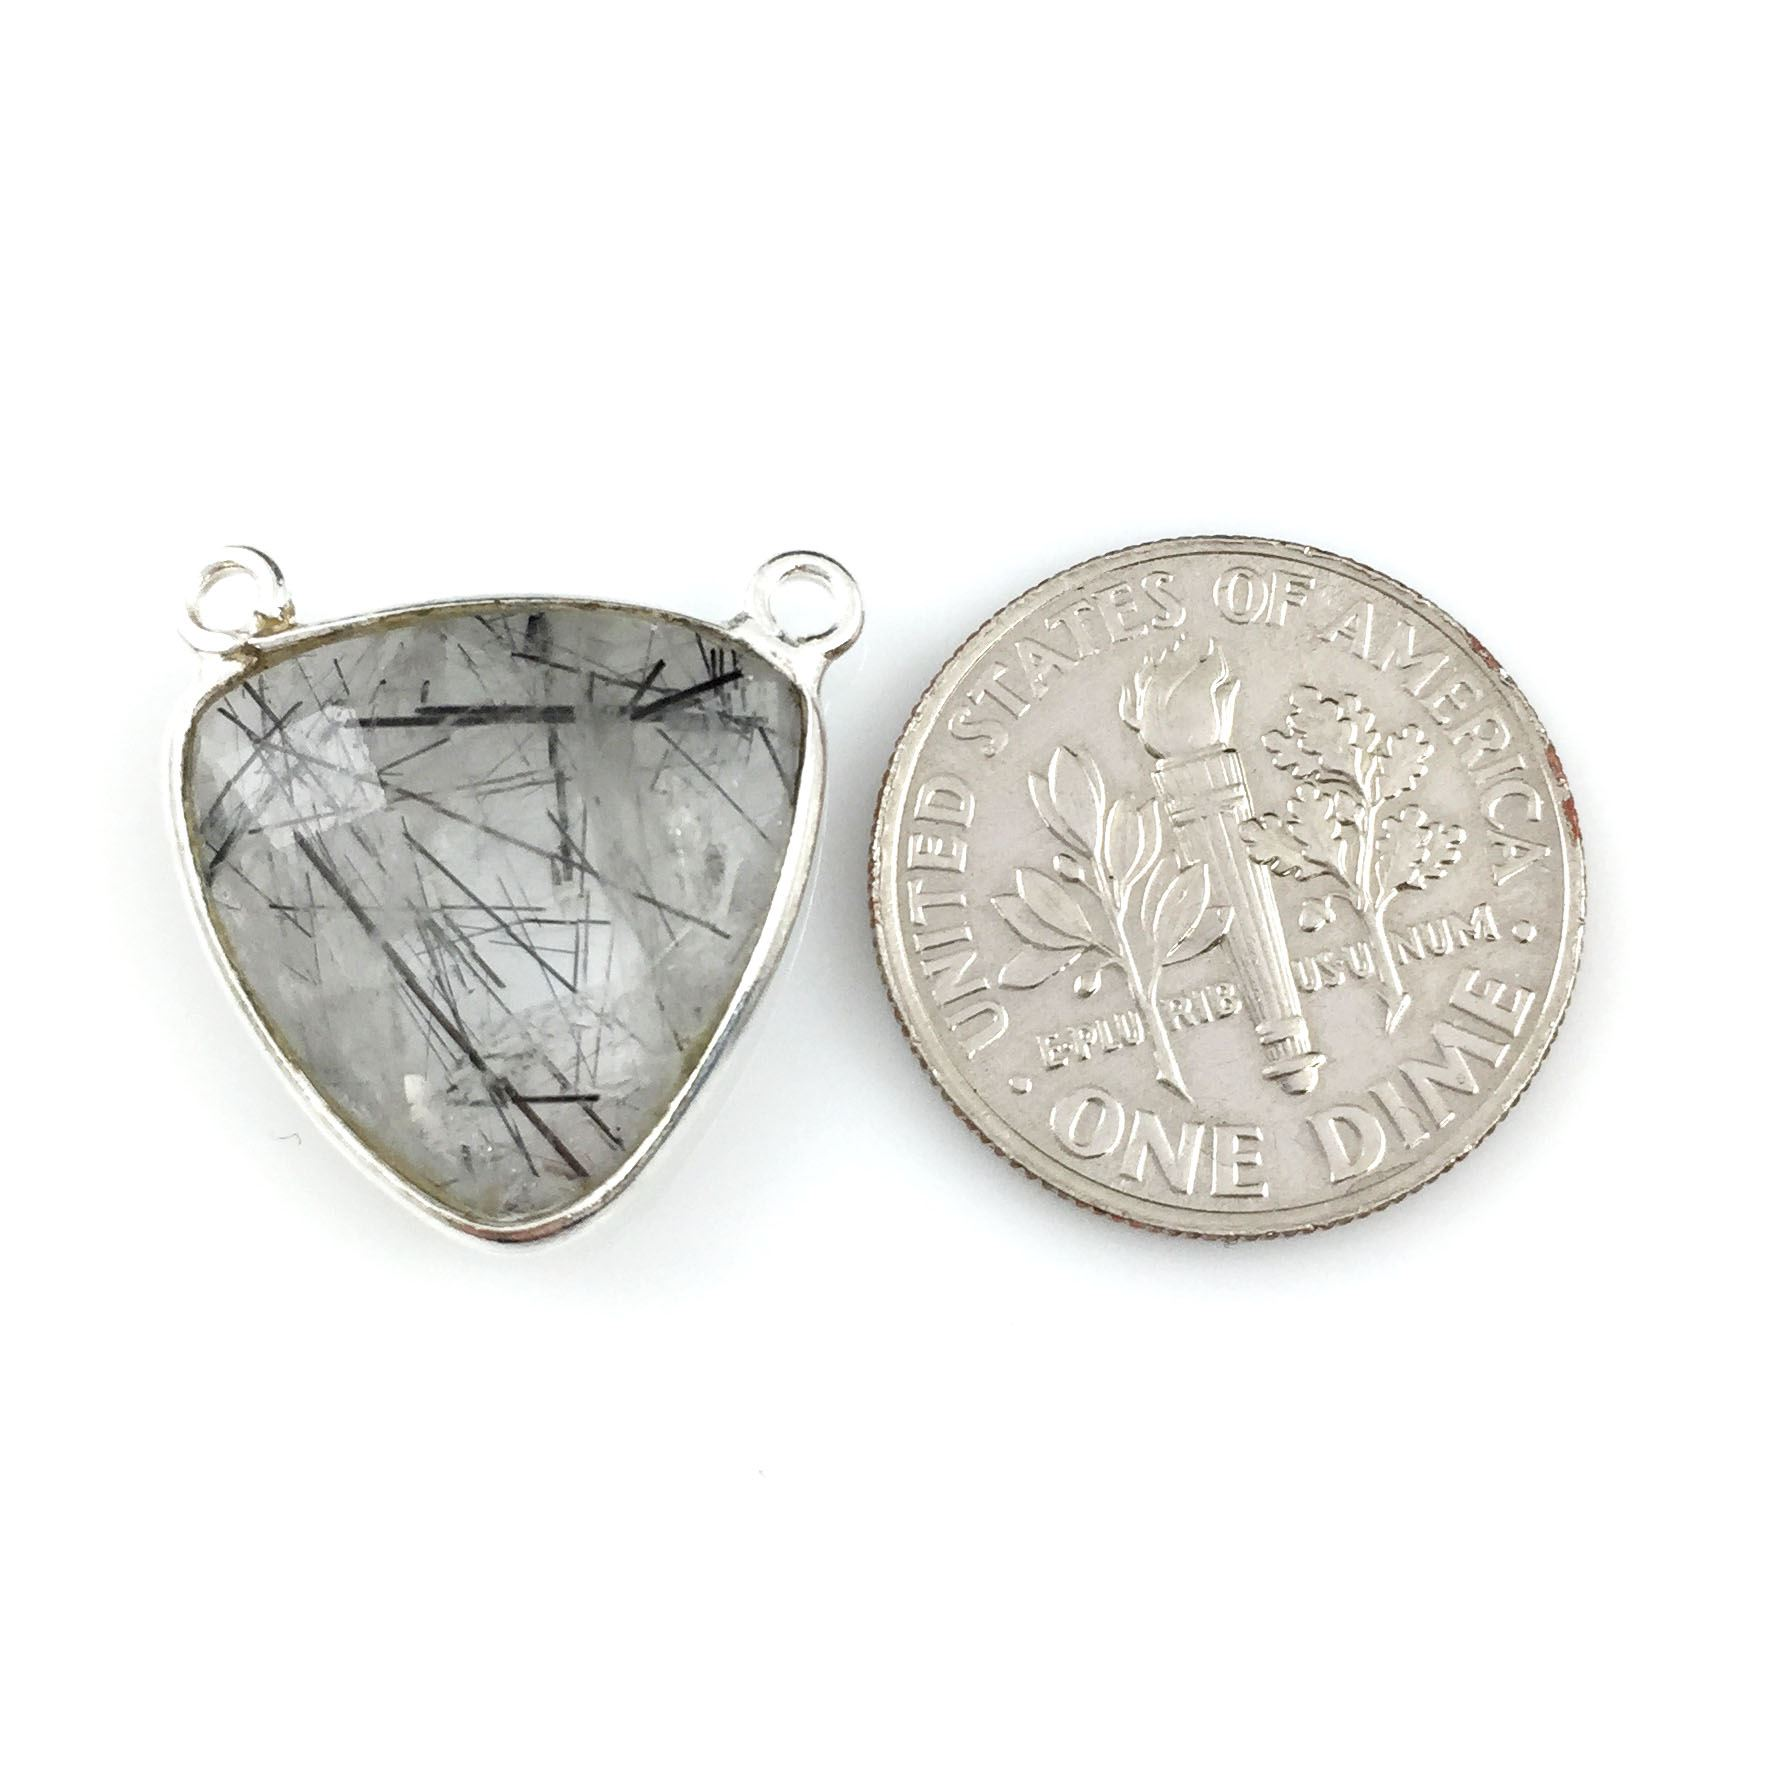 Bezel Gemstone Connector Pendant - Black Rutilated Quartz- Sterling Silver - Small Trillion Shaped Faceted - 15mm - 1 piece